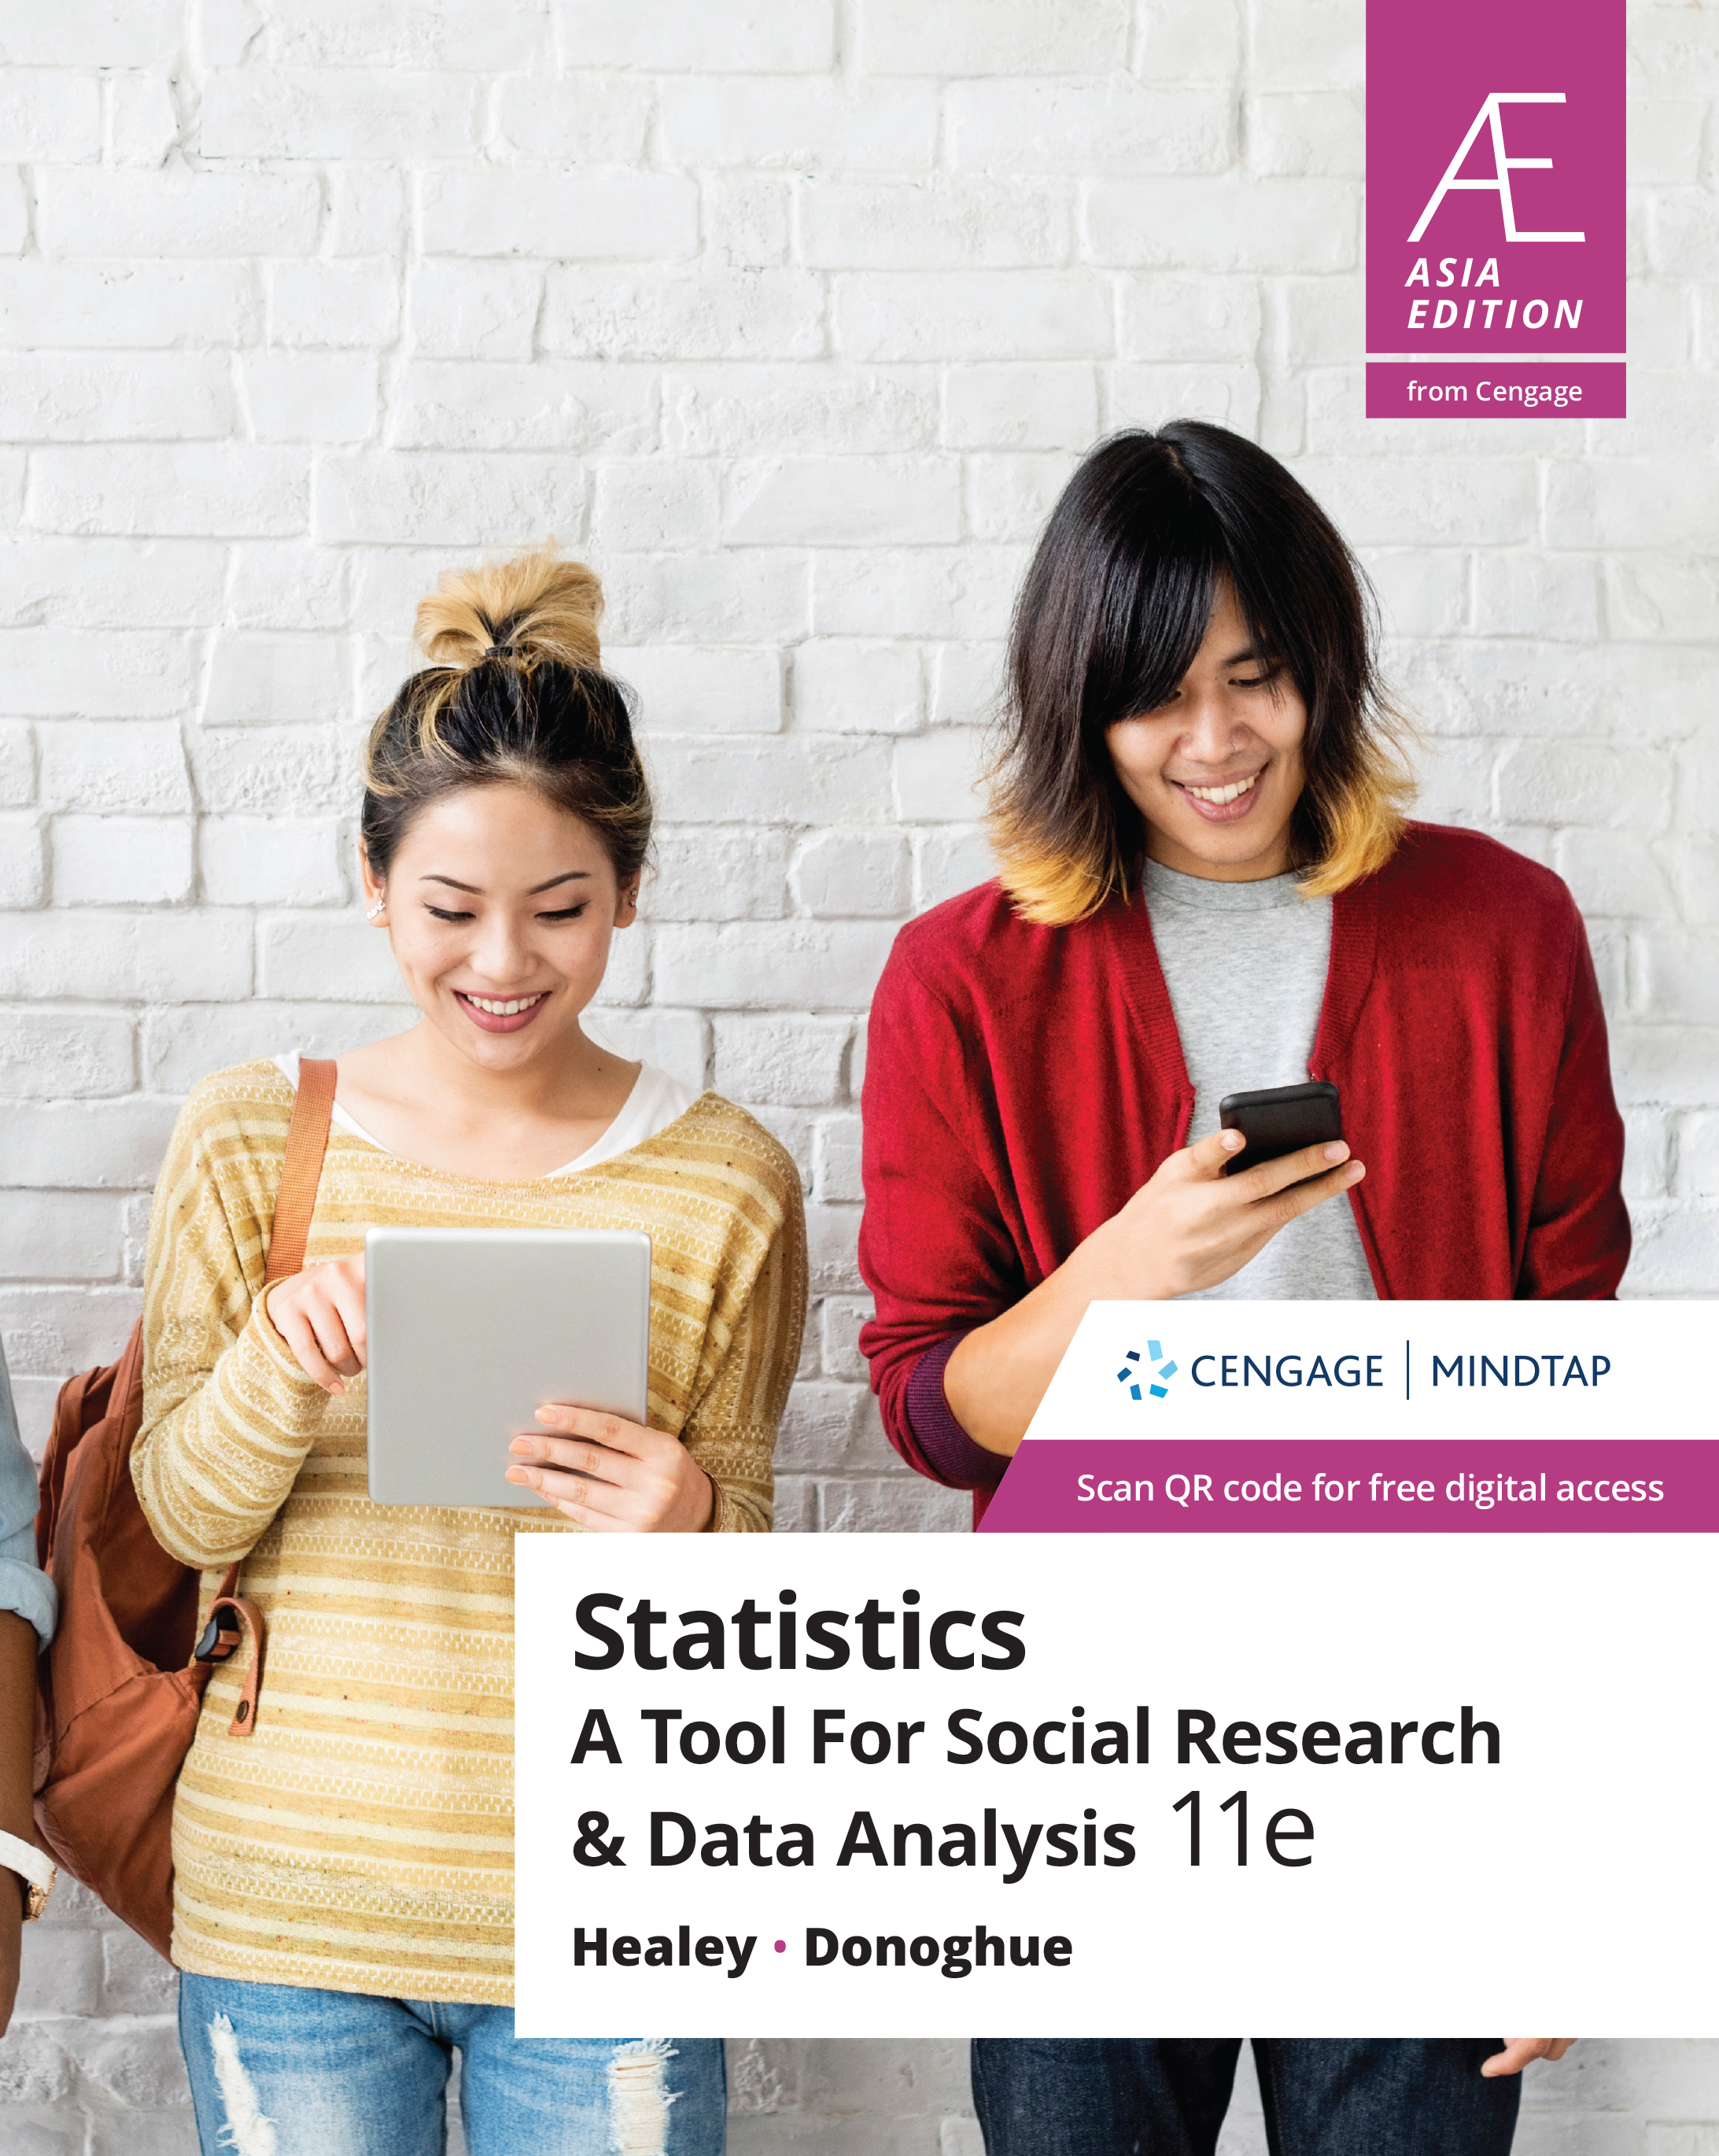 AE Statistics: A Tool For Social Research and Data Analysis